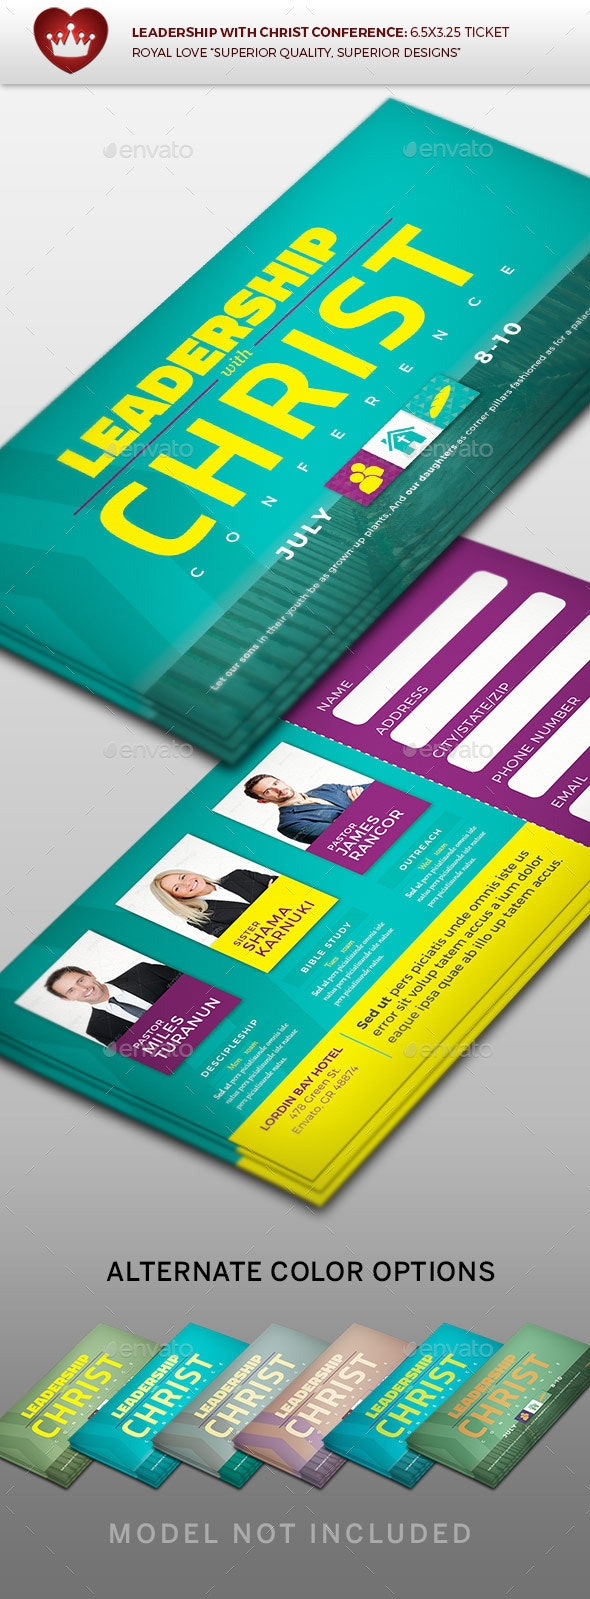 Leadership with Christ Registration Ticket - Miscellaneous Print Templates